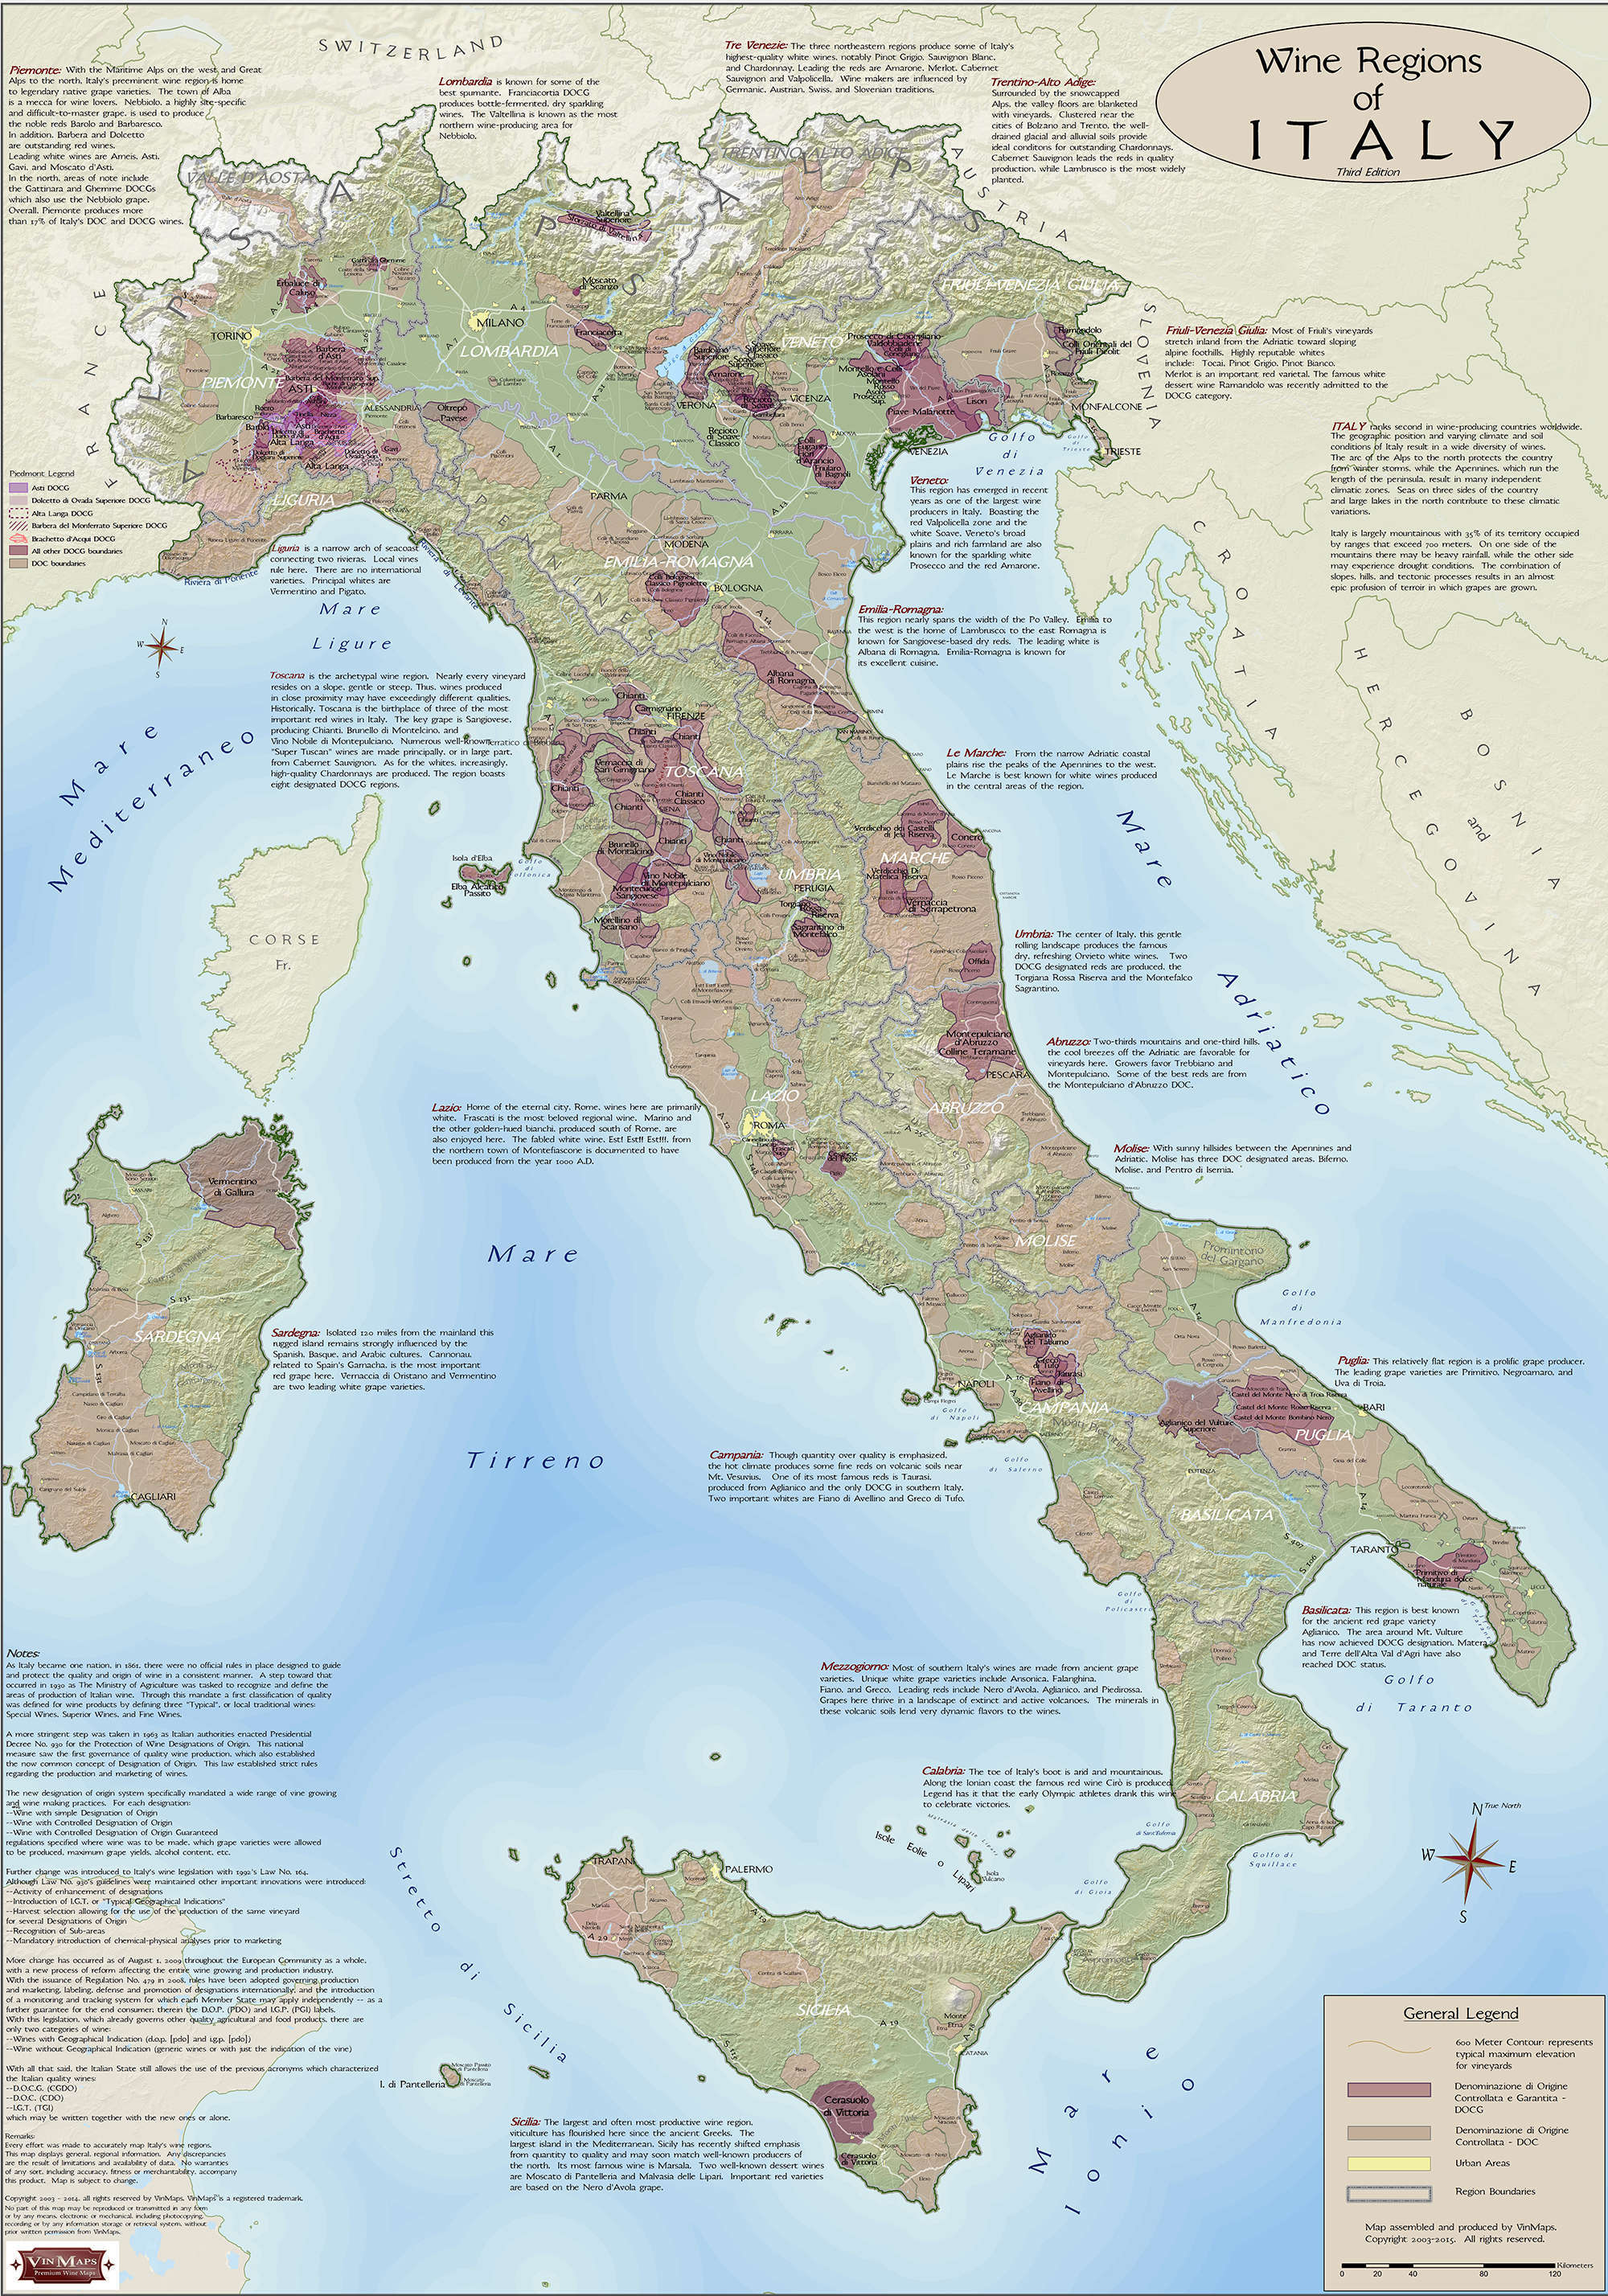 Italy Wine Regions Map Vinmaps